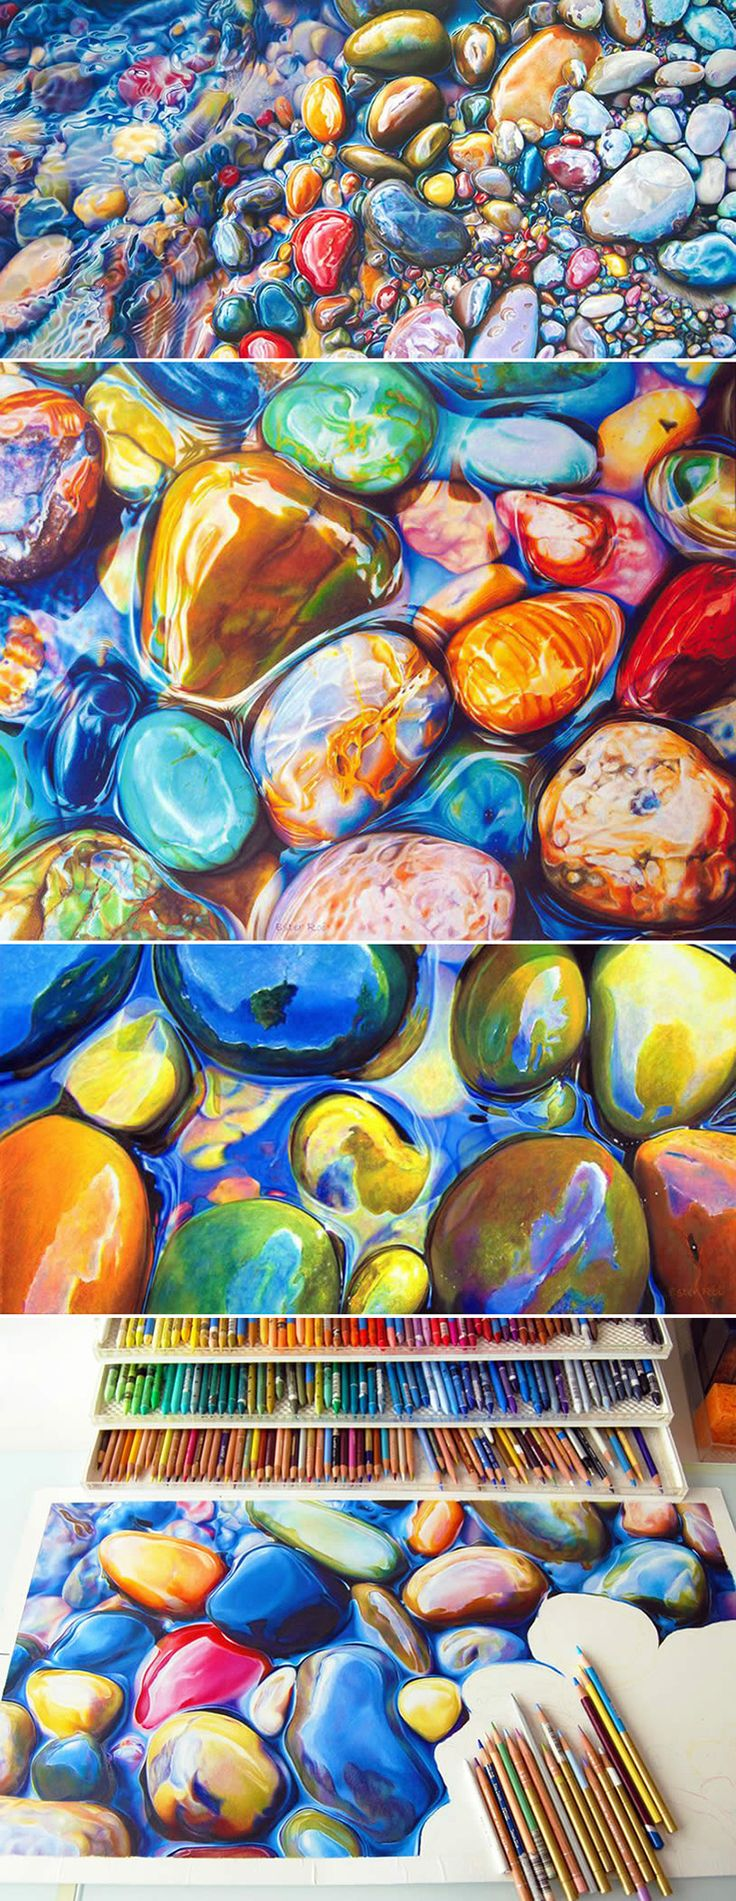 Ester Roi - her use of color amazes me.